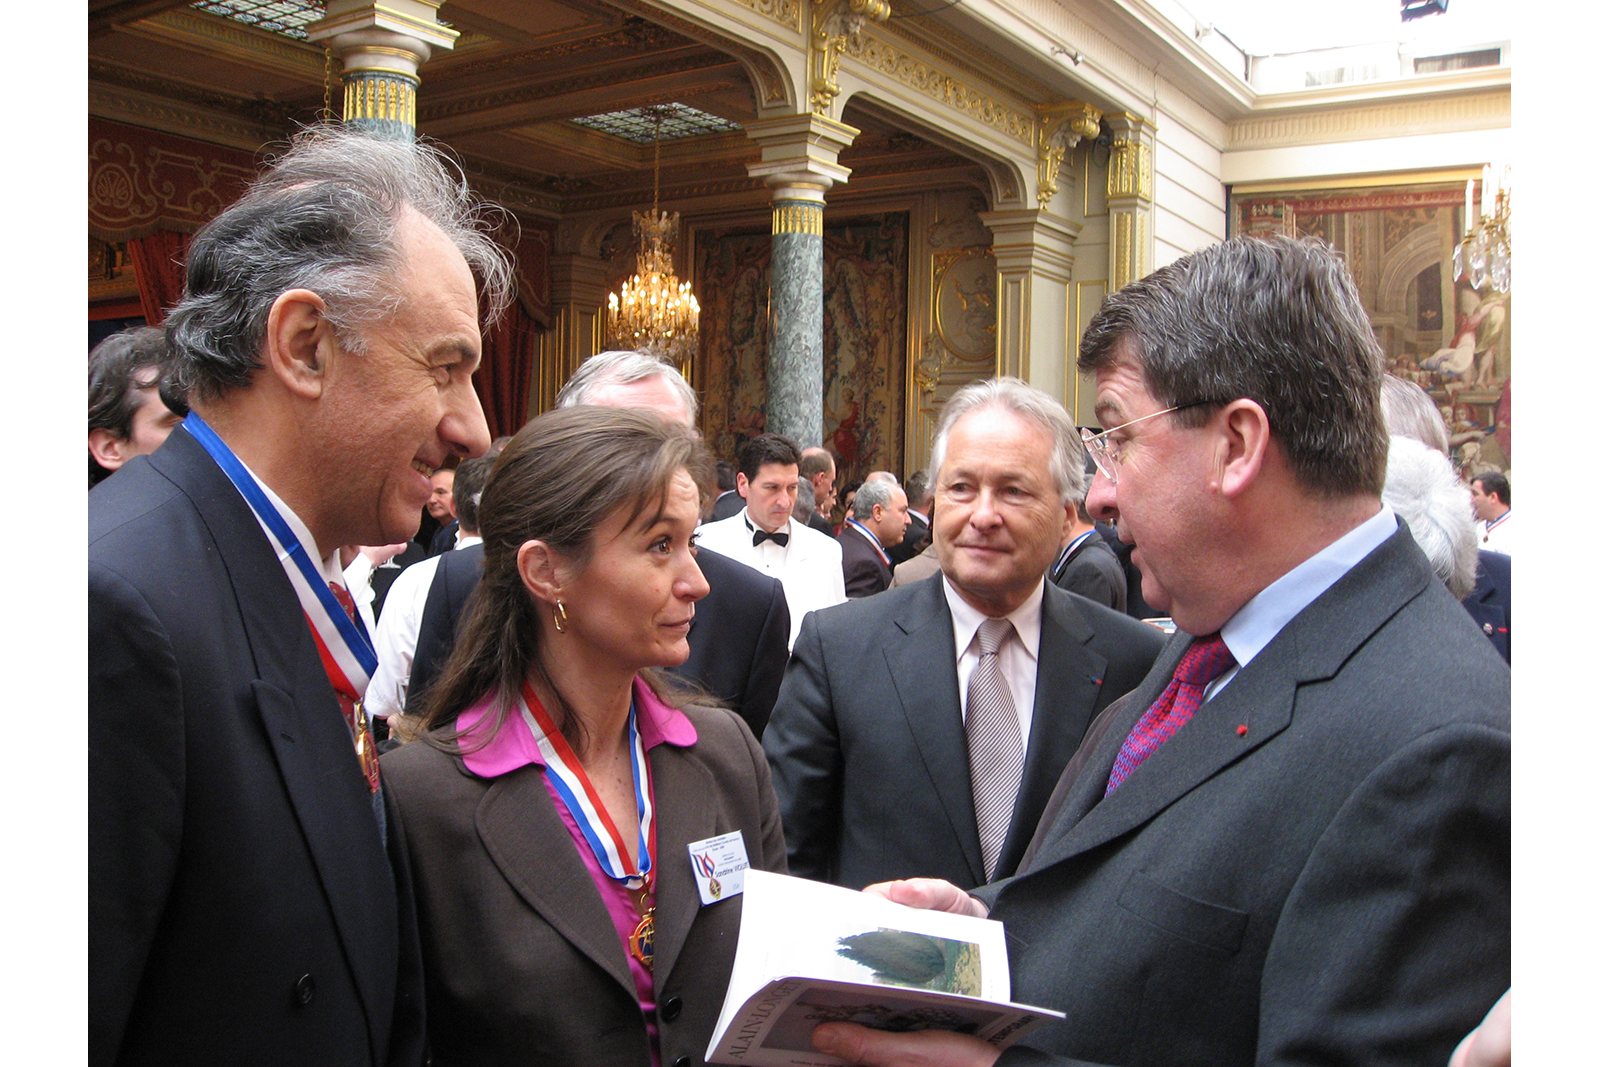 Pierre Ramond, author of many books on straw marquetry, Sandrine Viollet and Xavier Darcos, minister of education